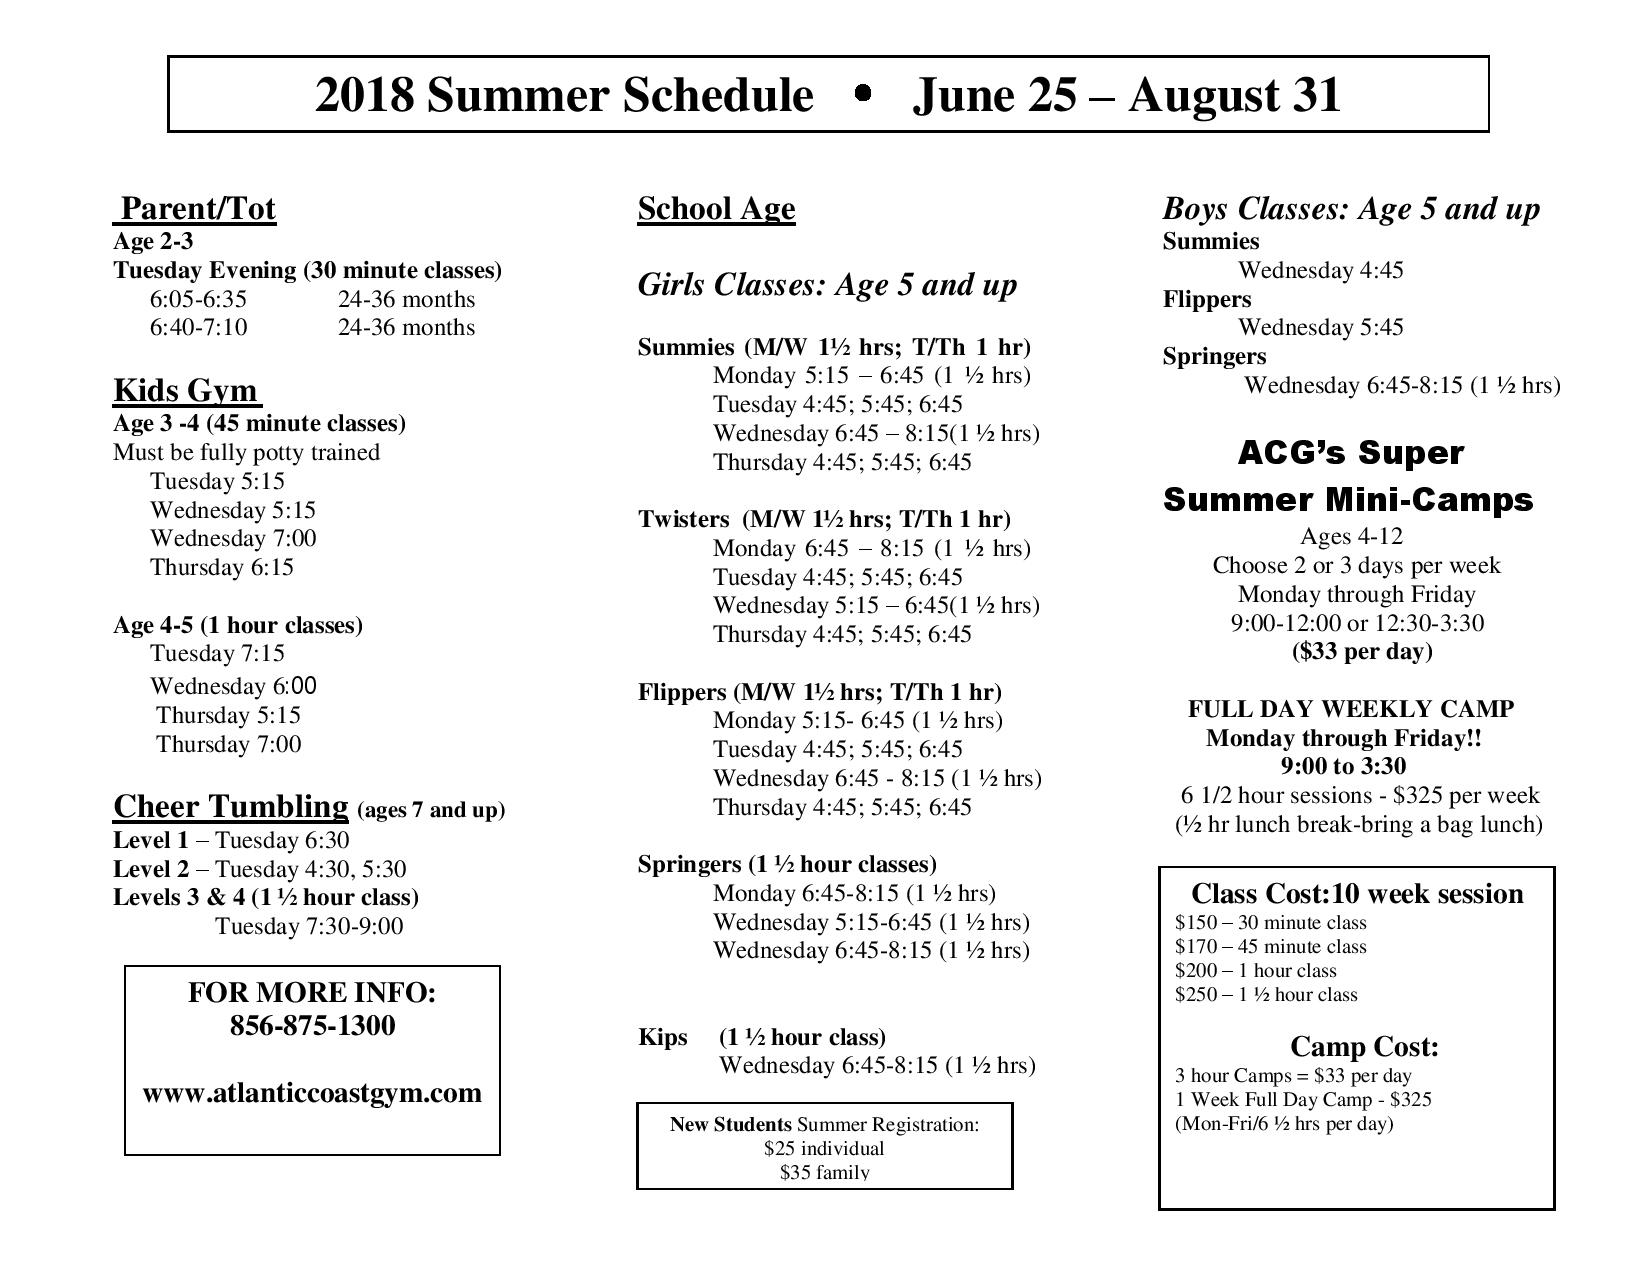 2018 Summer Schedule - Atlantic Coast Gymnastics